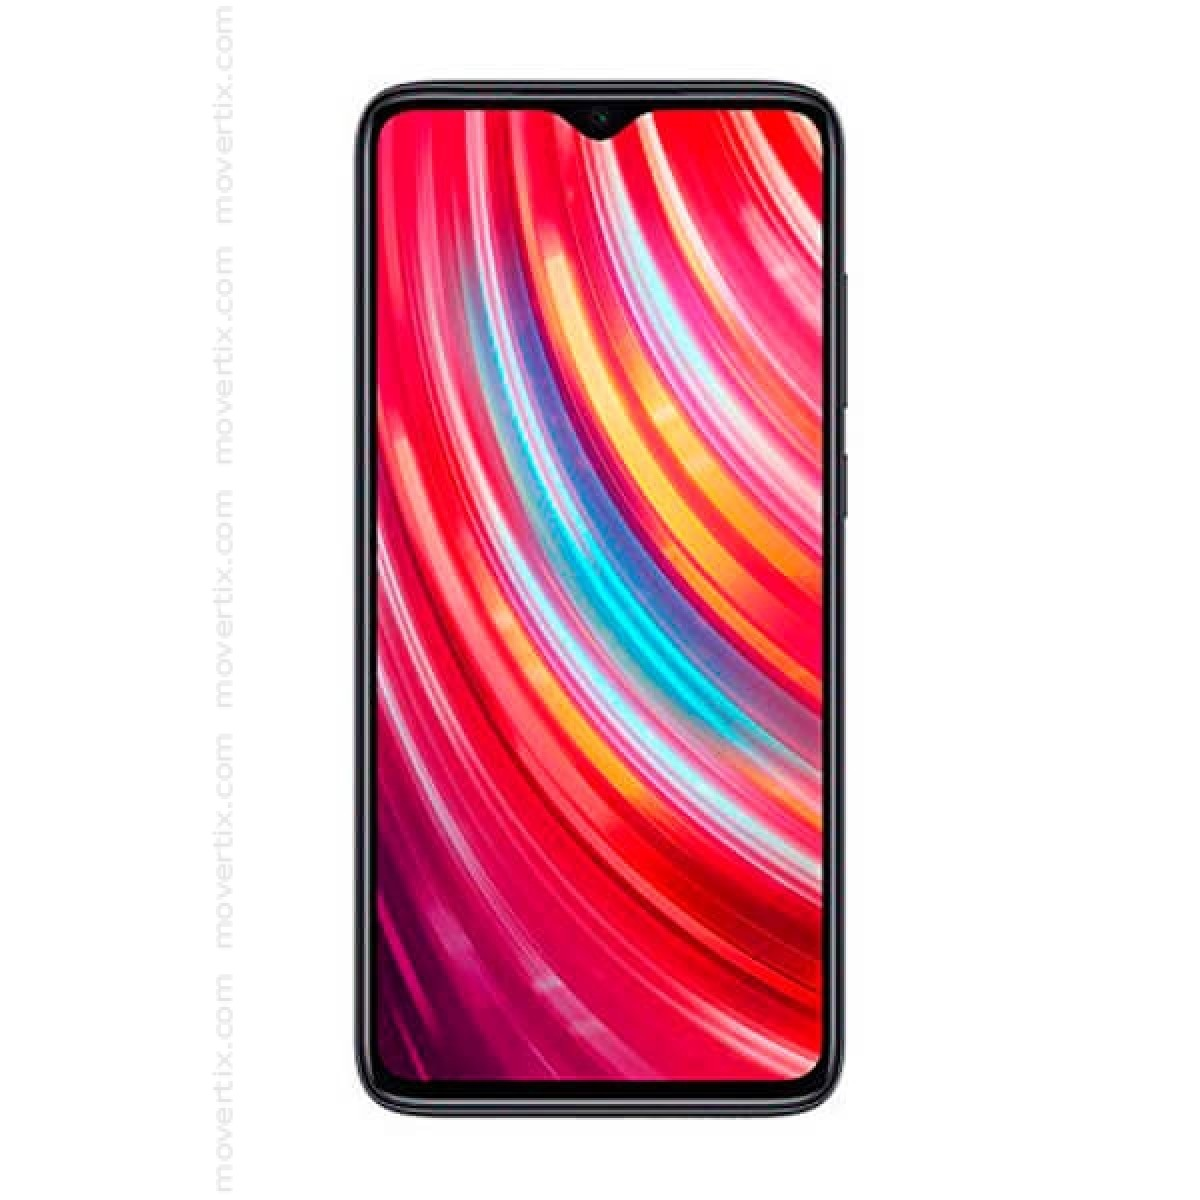 Xiaomi Redmi Note 8 Pro Dual Sim Mineral Grey 64gb And 6gb Ram 6941059634645 Movertix Mobile Phones Shop